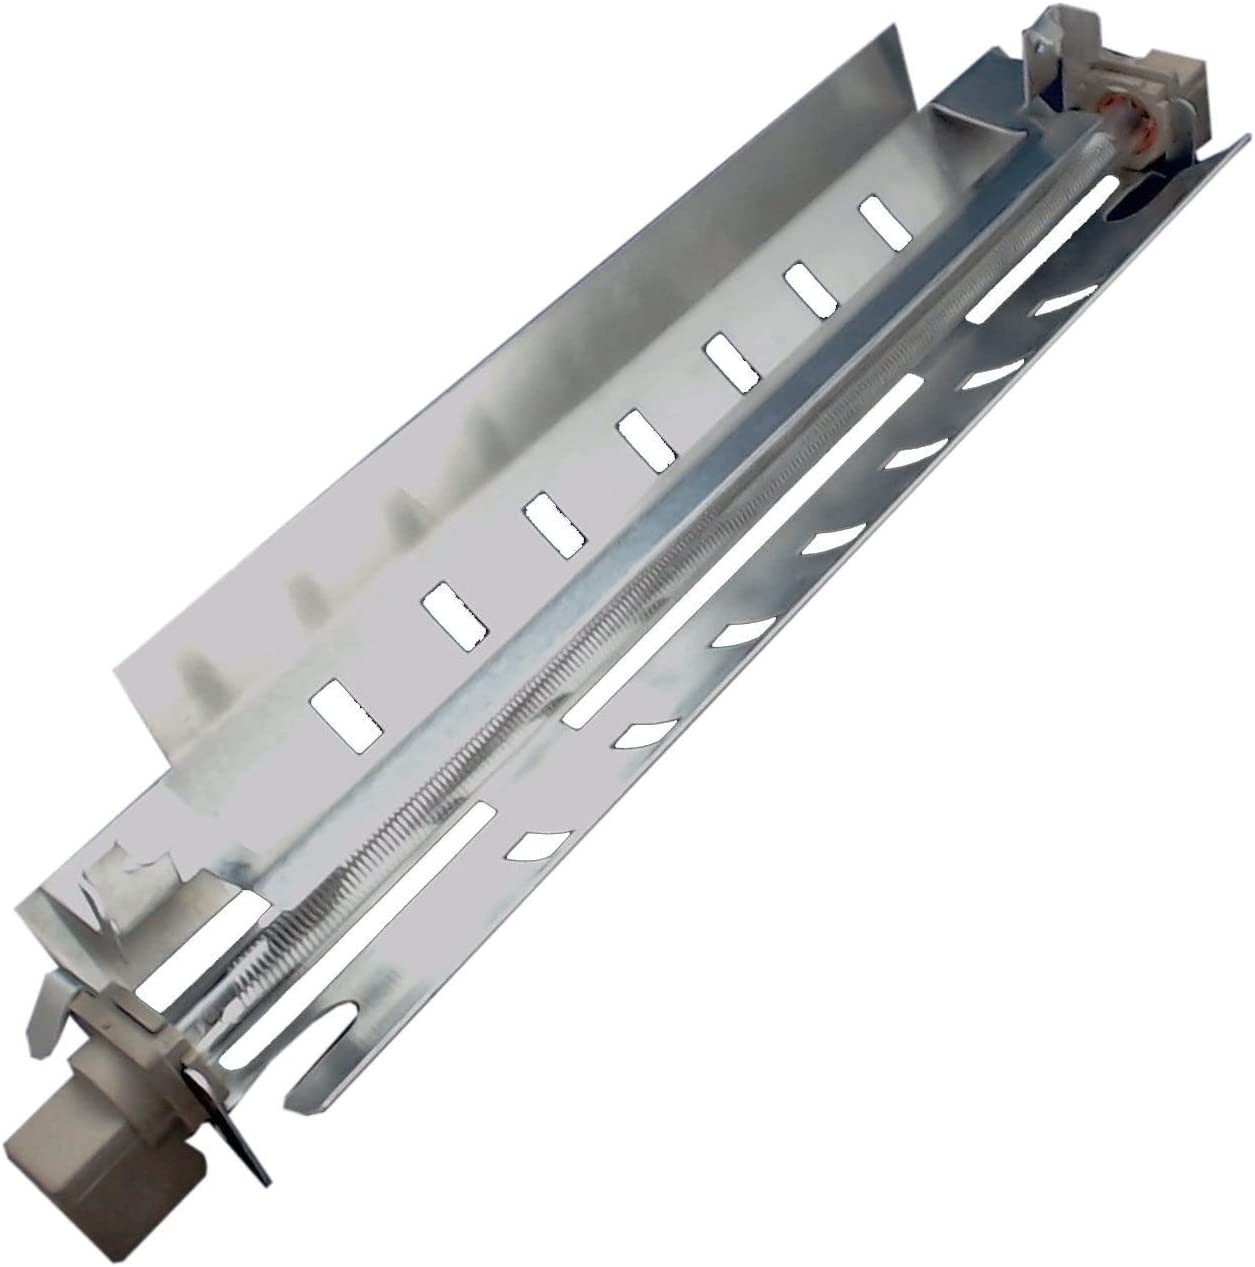 WR51X10055 WR51X10030 914088 Details about  /HQRP Defrost Heater for GE PS Series Refrigerators